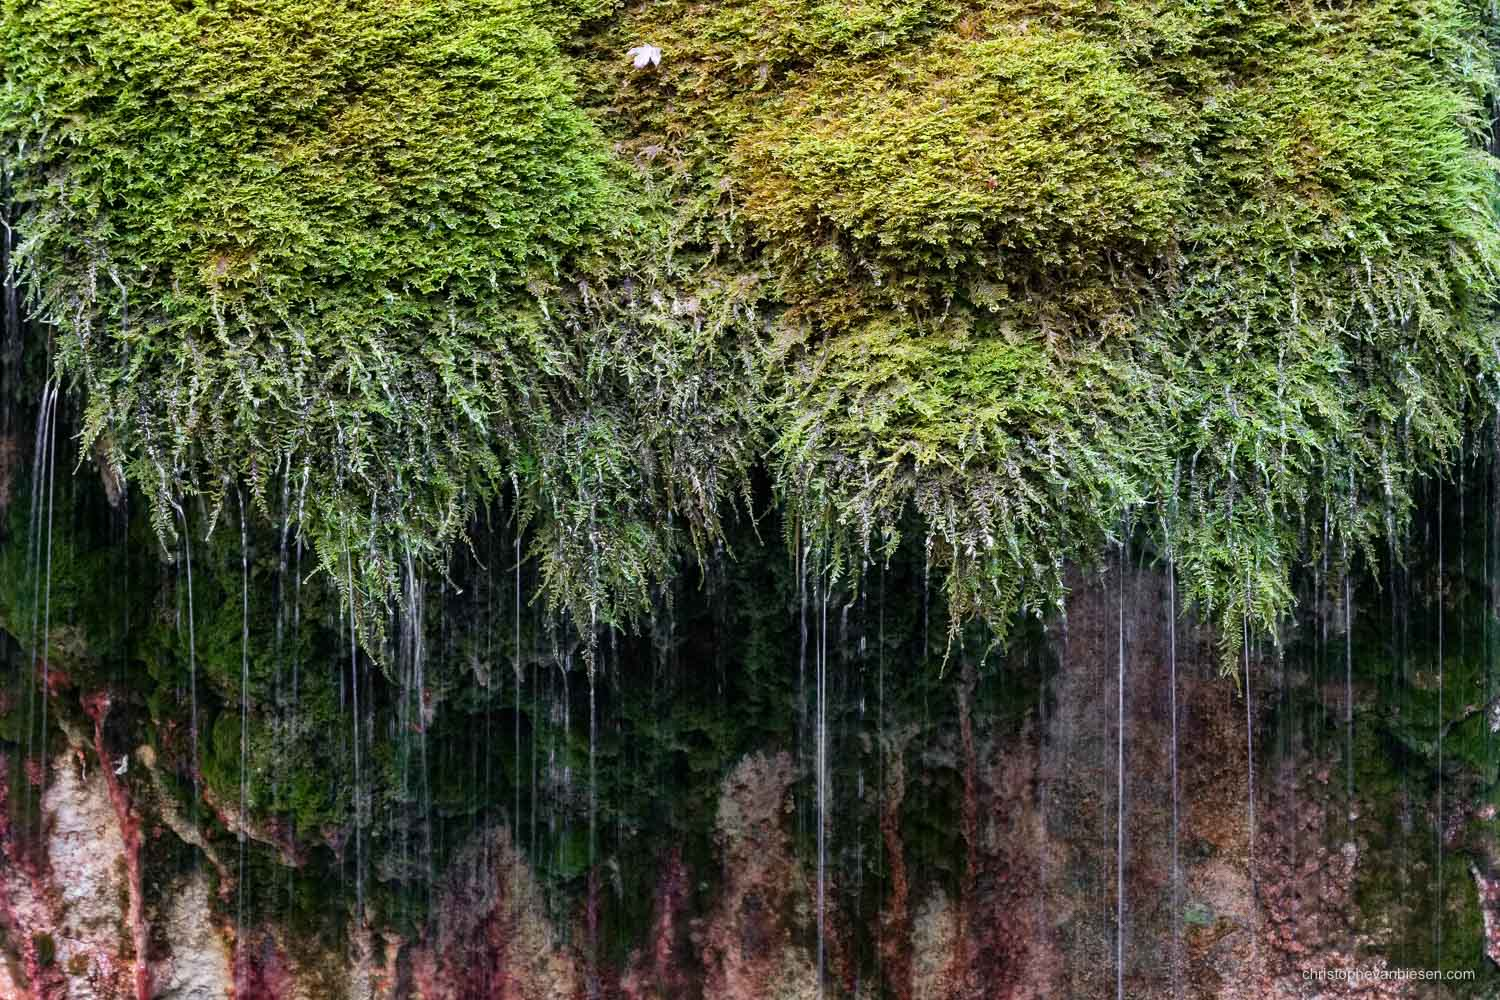 Visit the Mullerthal - Luxembourg - The Kalktuffquelle in the Mullerthal region in Luxembourg - Moss Waterfall